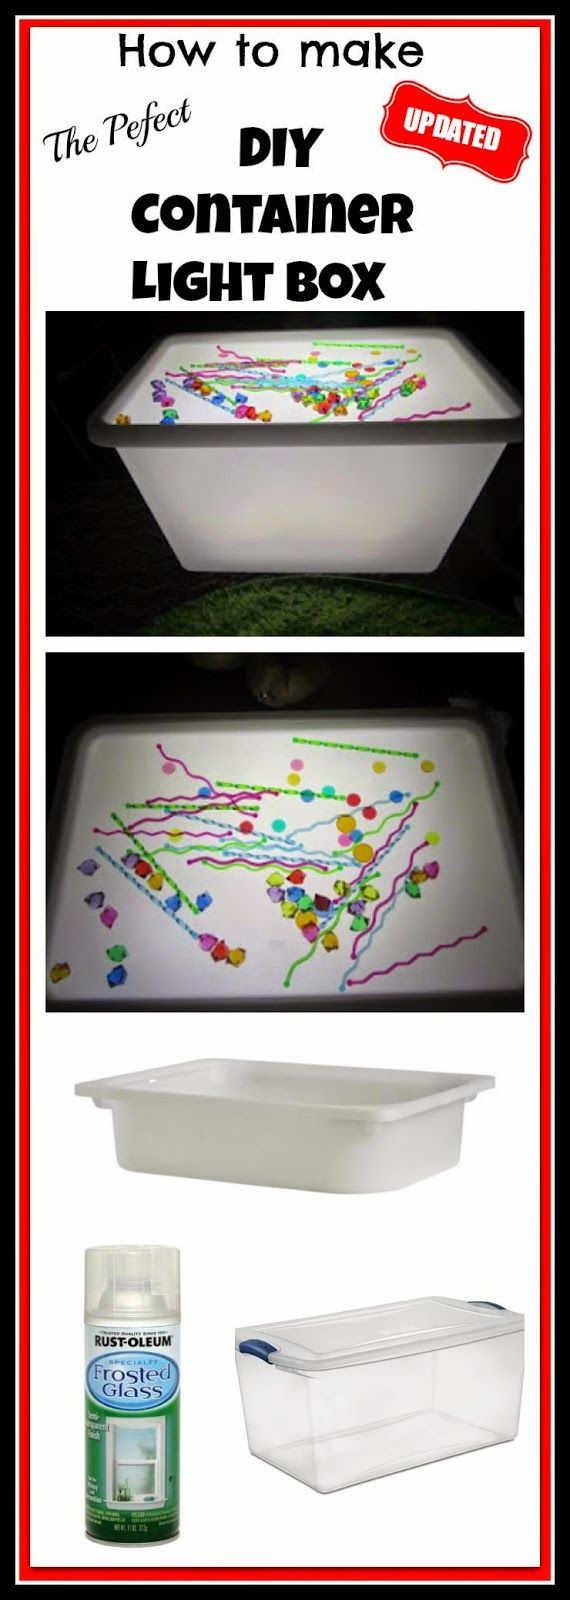 Child craft light table - The Perfect Diy Container Light Box